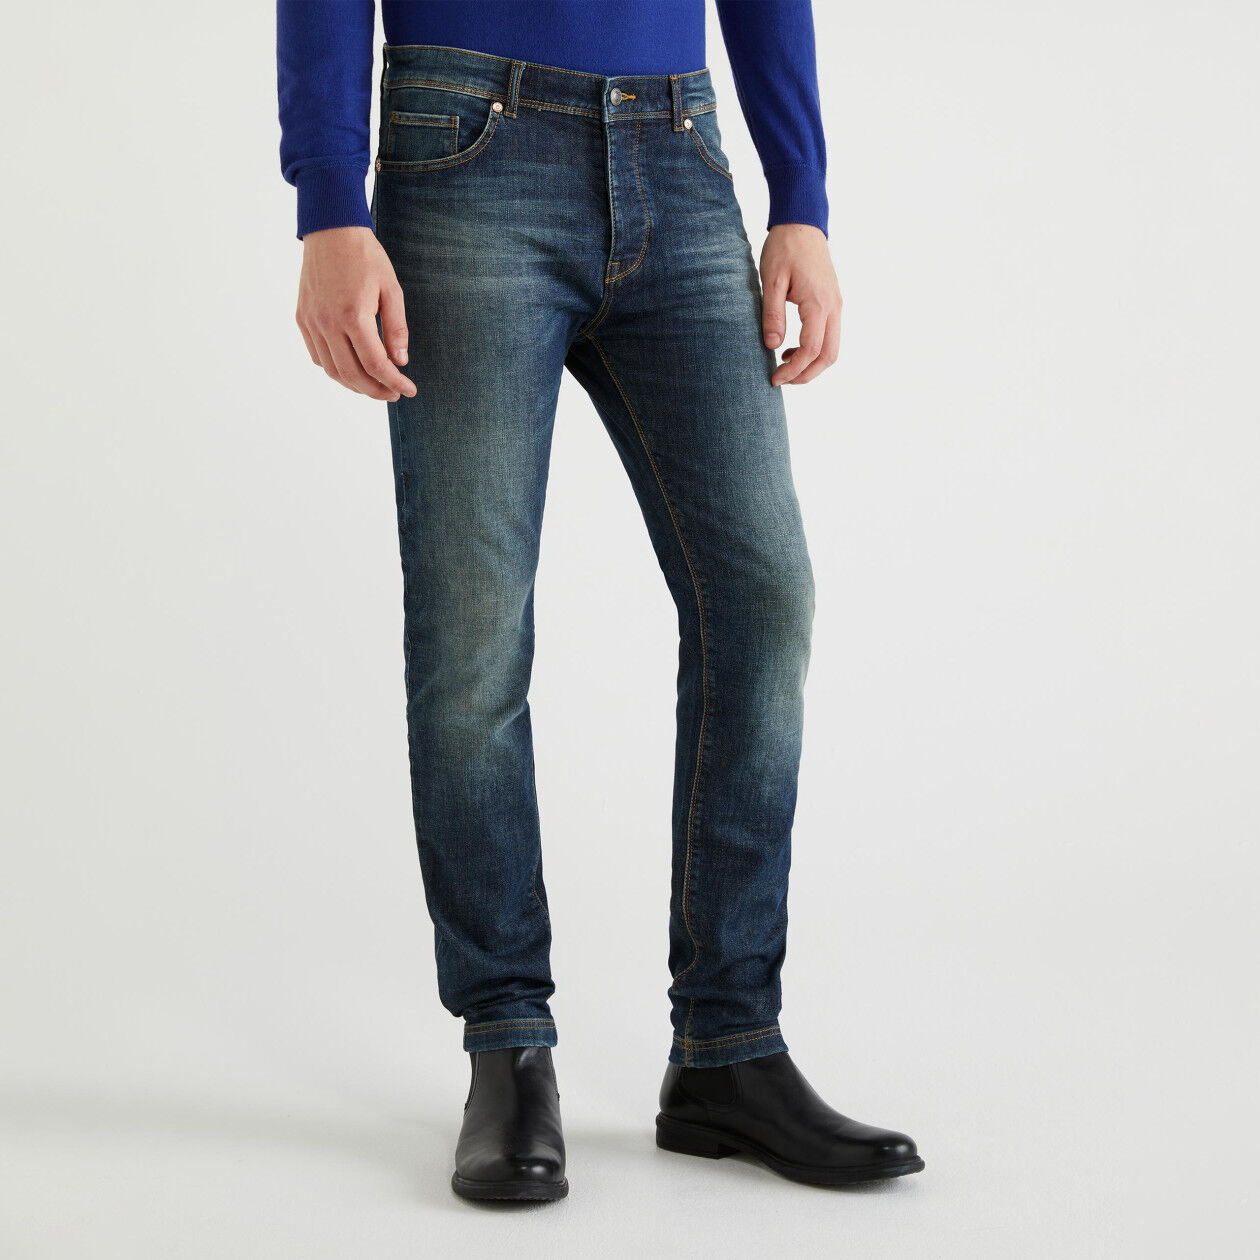 Skinny fit jeans with buttons